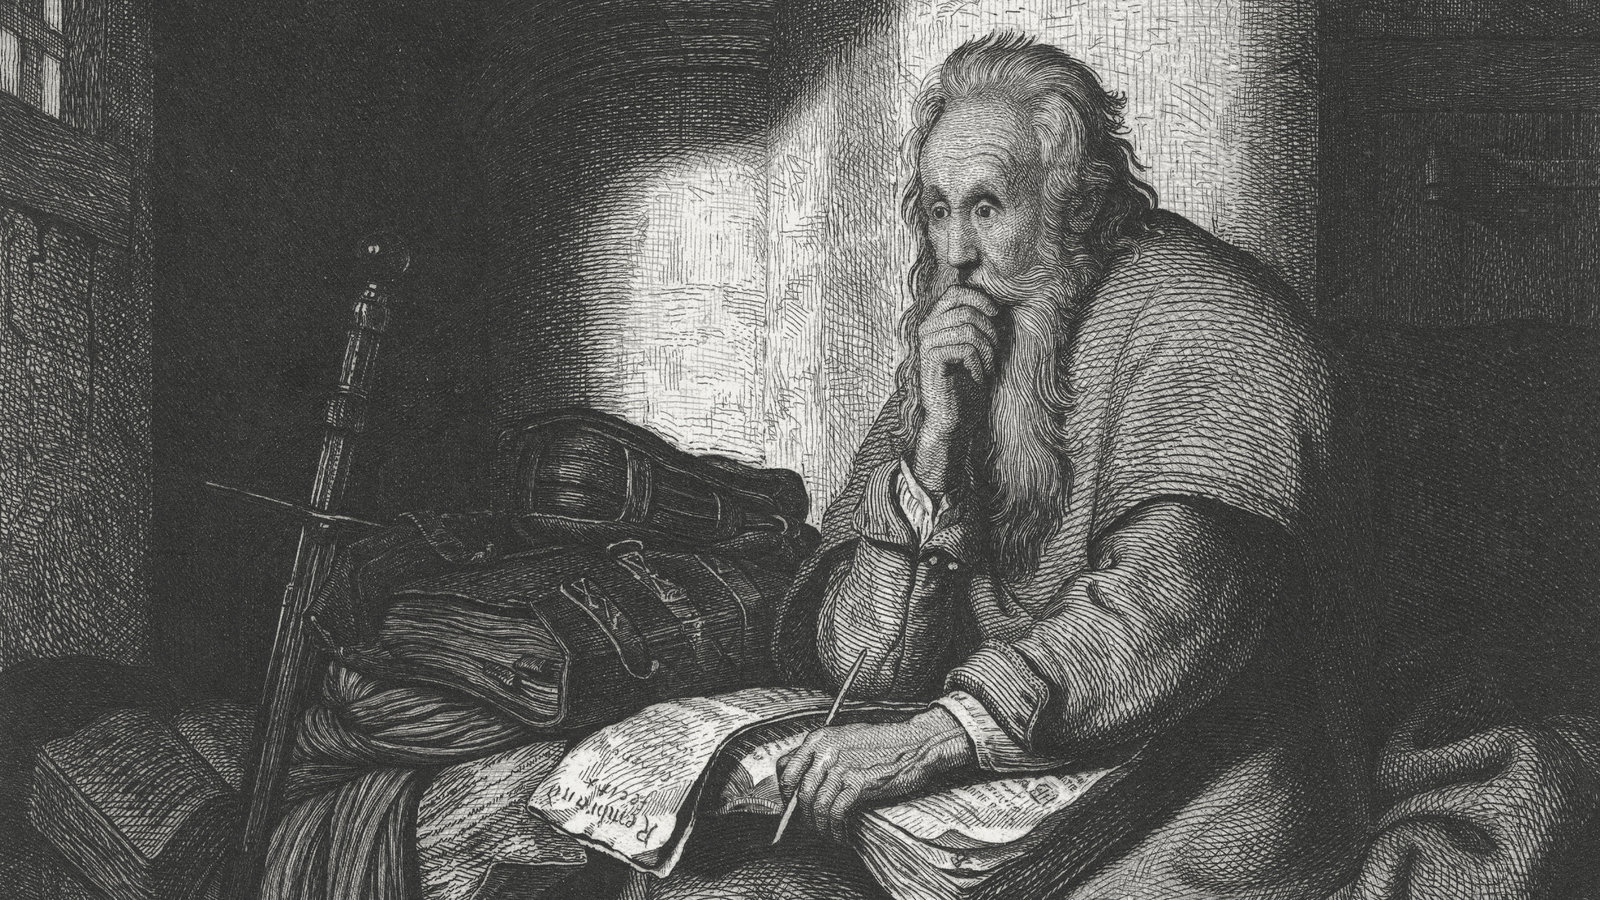 Why I Love the Apostle Paul oulbefto